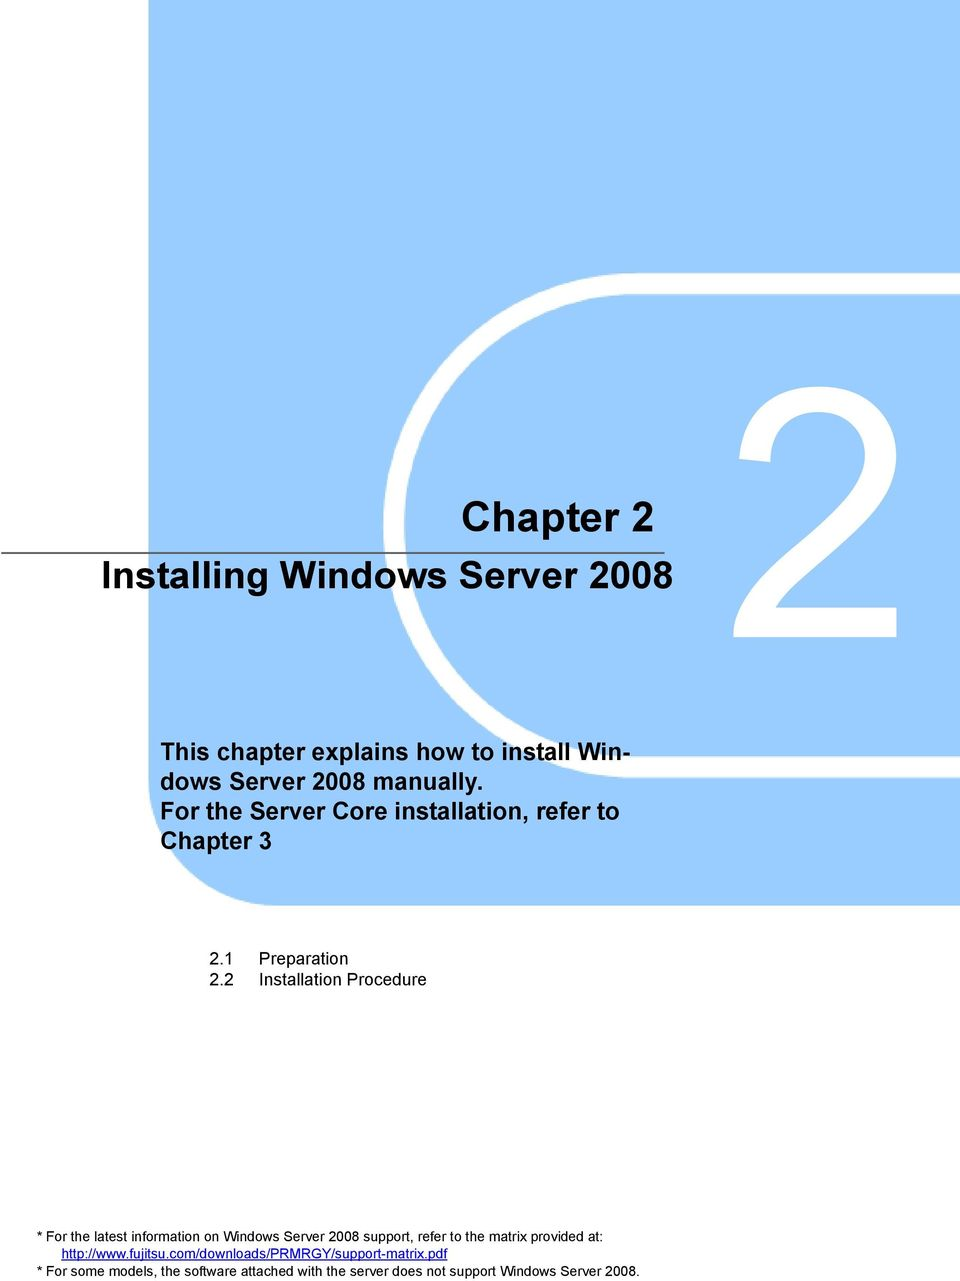 2 Installation Procedure * For the latest information on Windows Server 2008 support, refer to the matrix